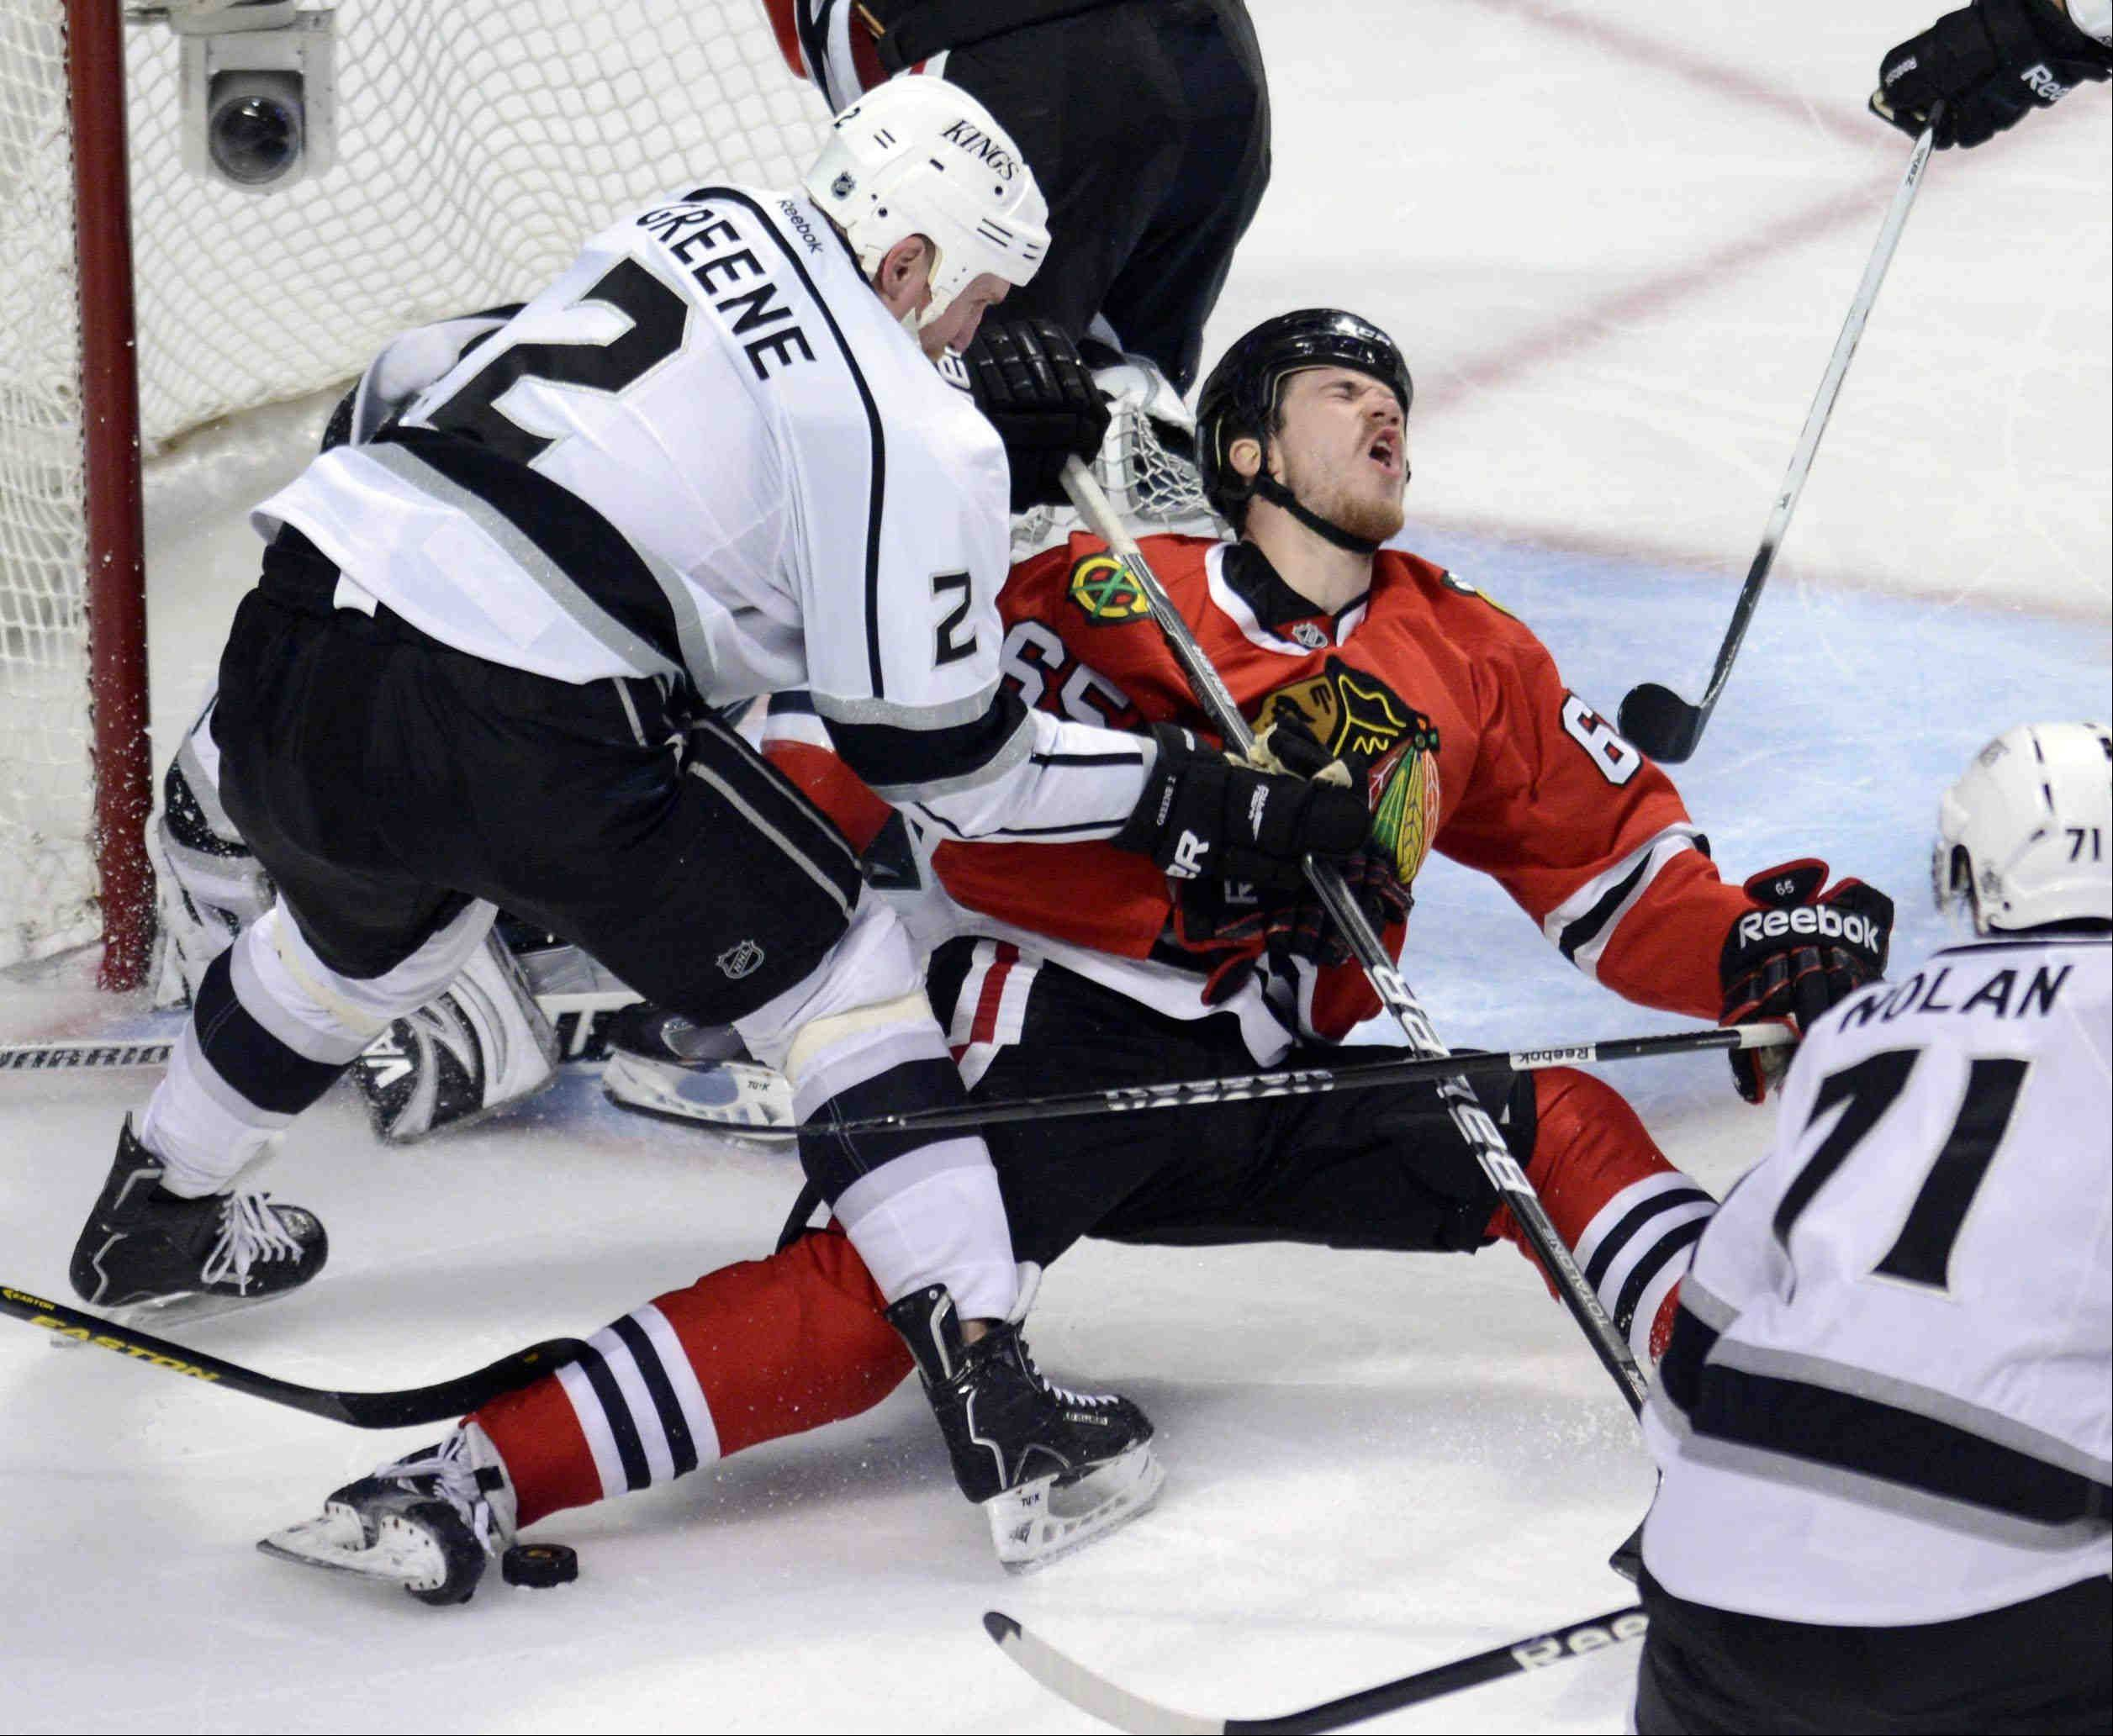 Los Angeles Kings defenseman Matt Greene cross checks Chicago Blackhawks center Andrew Shaw in front of the net Saturday during the NHL Western Conference Finals Game 5 at the United Center in Chicago.